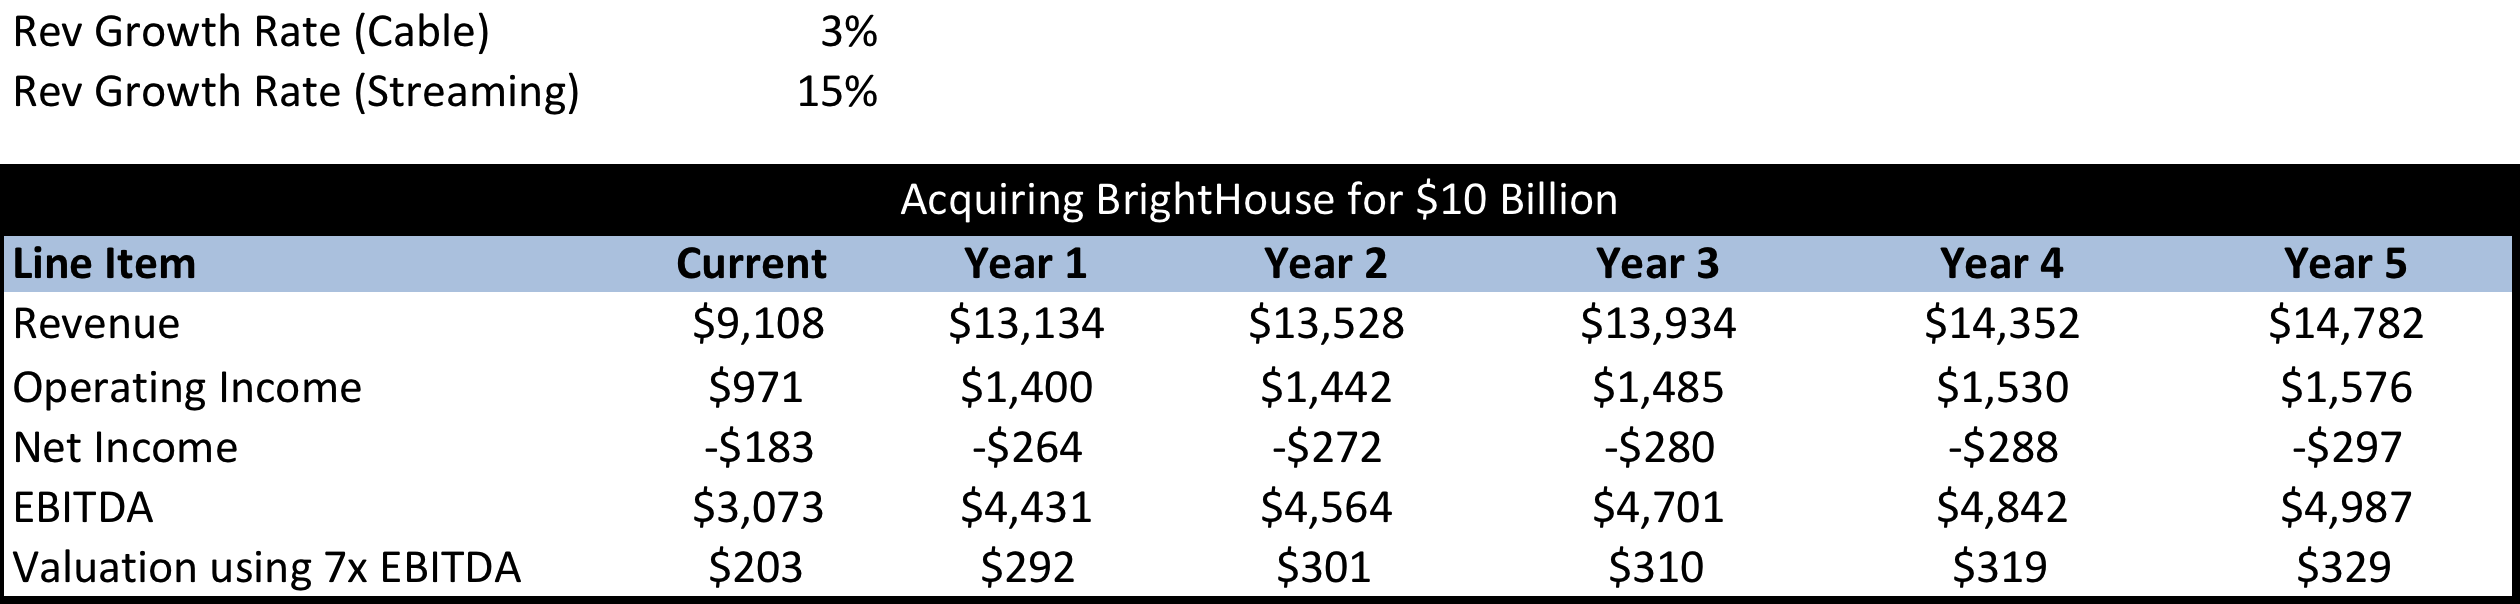 should charter communications spend money on bright house networks